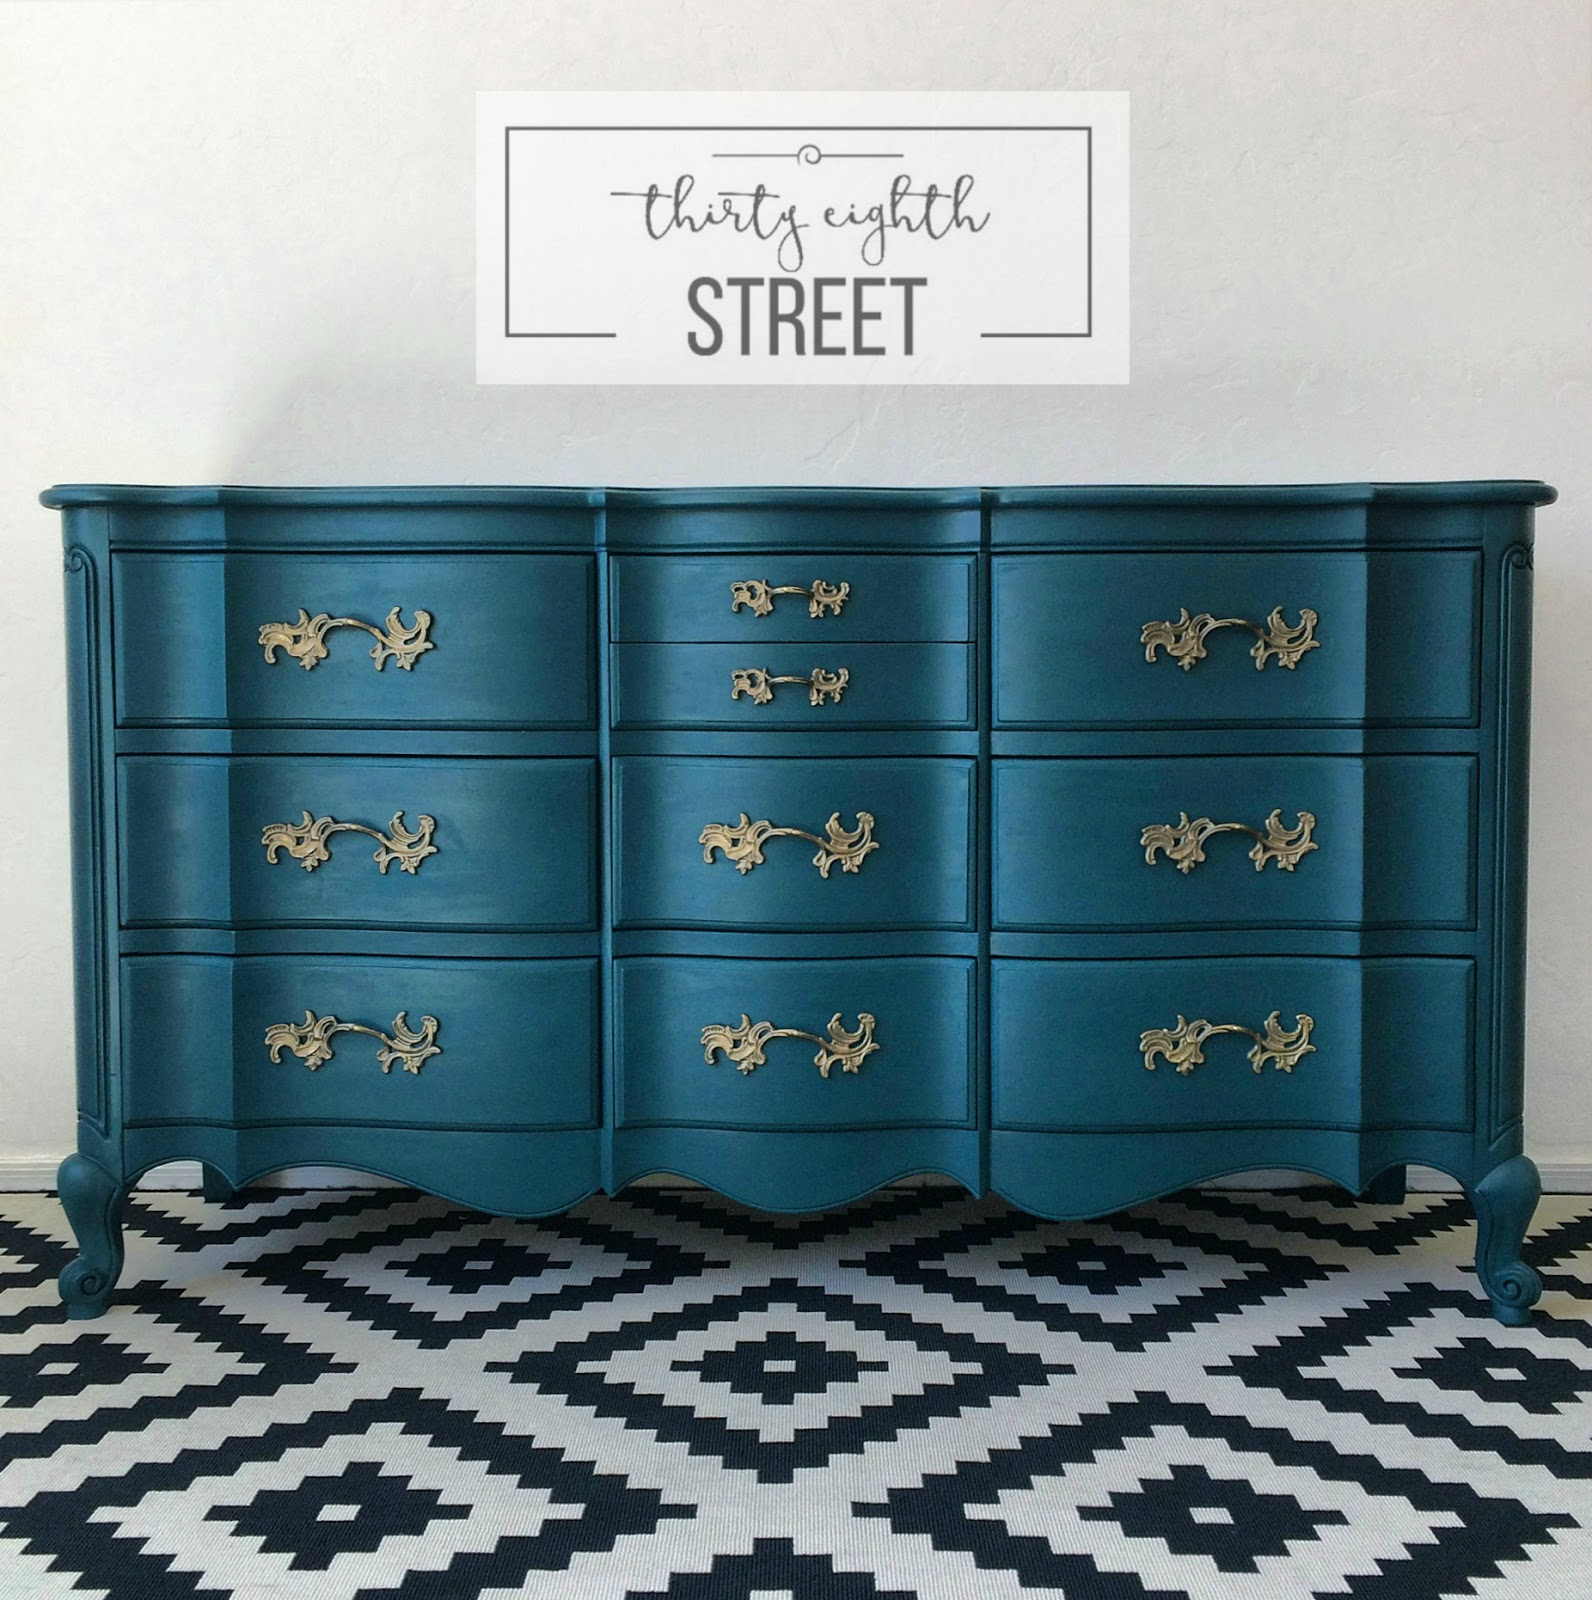 Painted Dresser in Peacock Blue! - Thirty Eighth Street